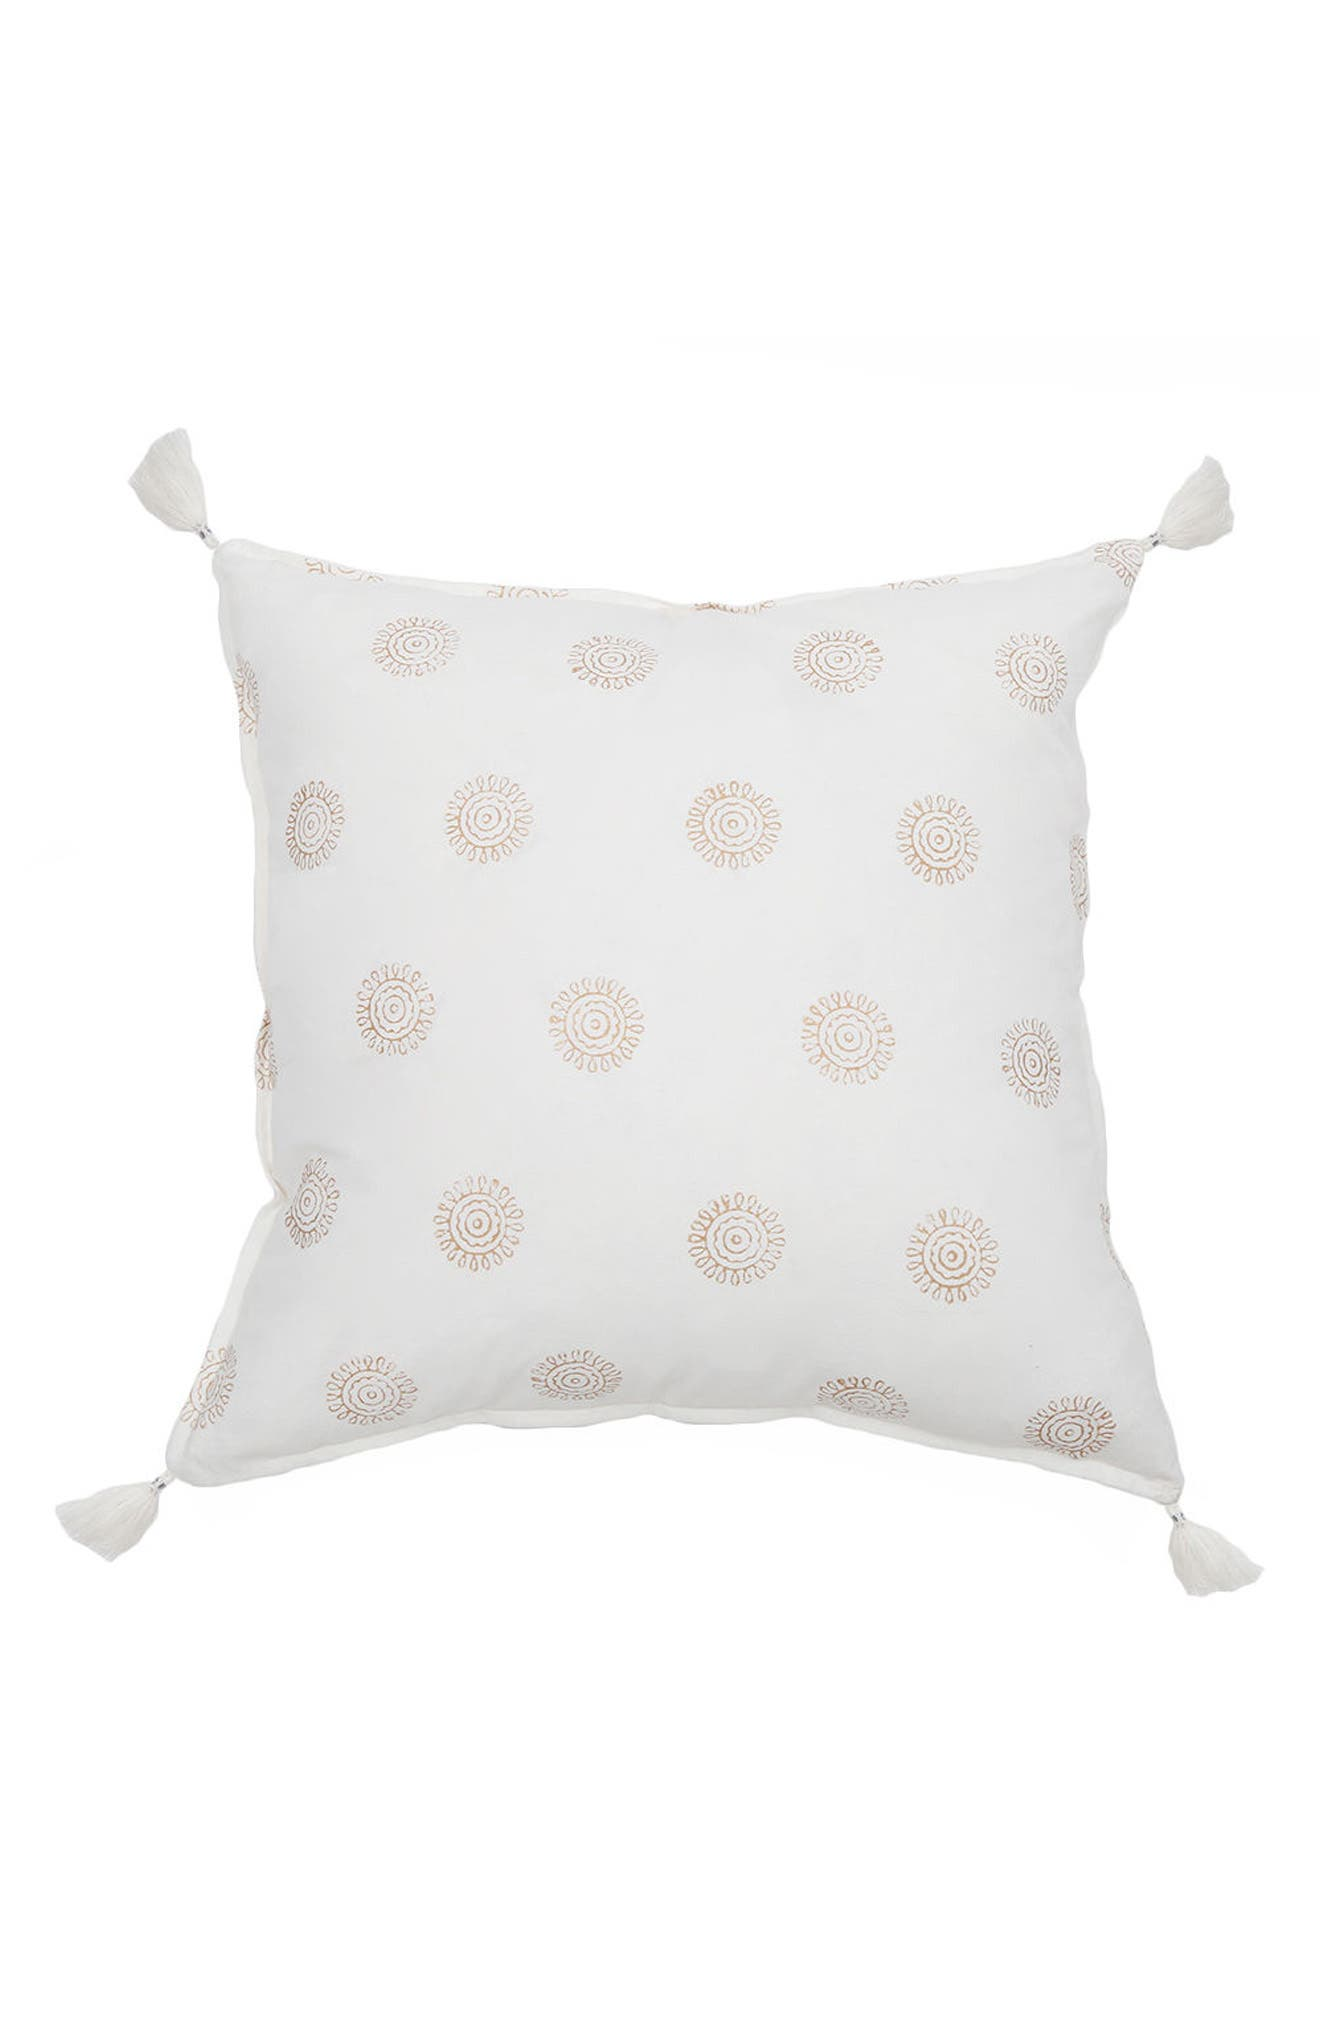 Alternate Image 1 Selected - Pom Pom at Home Ravi Accent Pillow